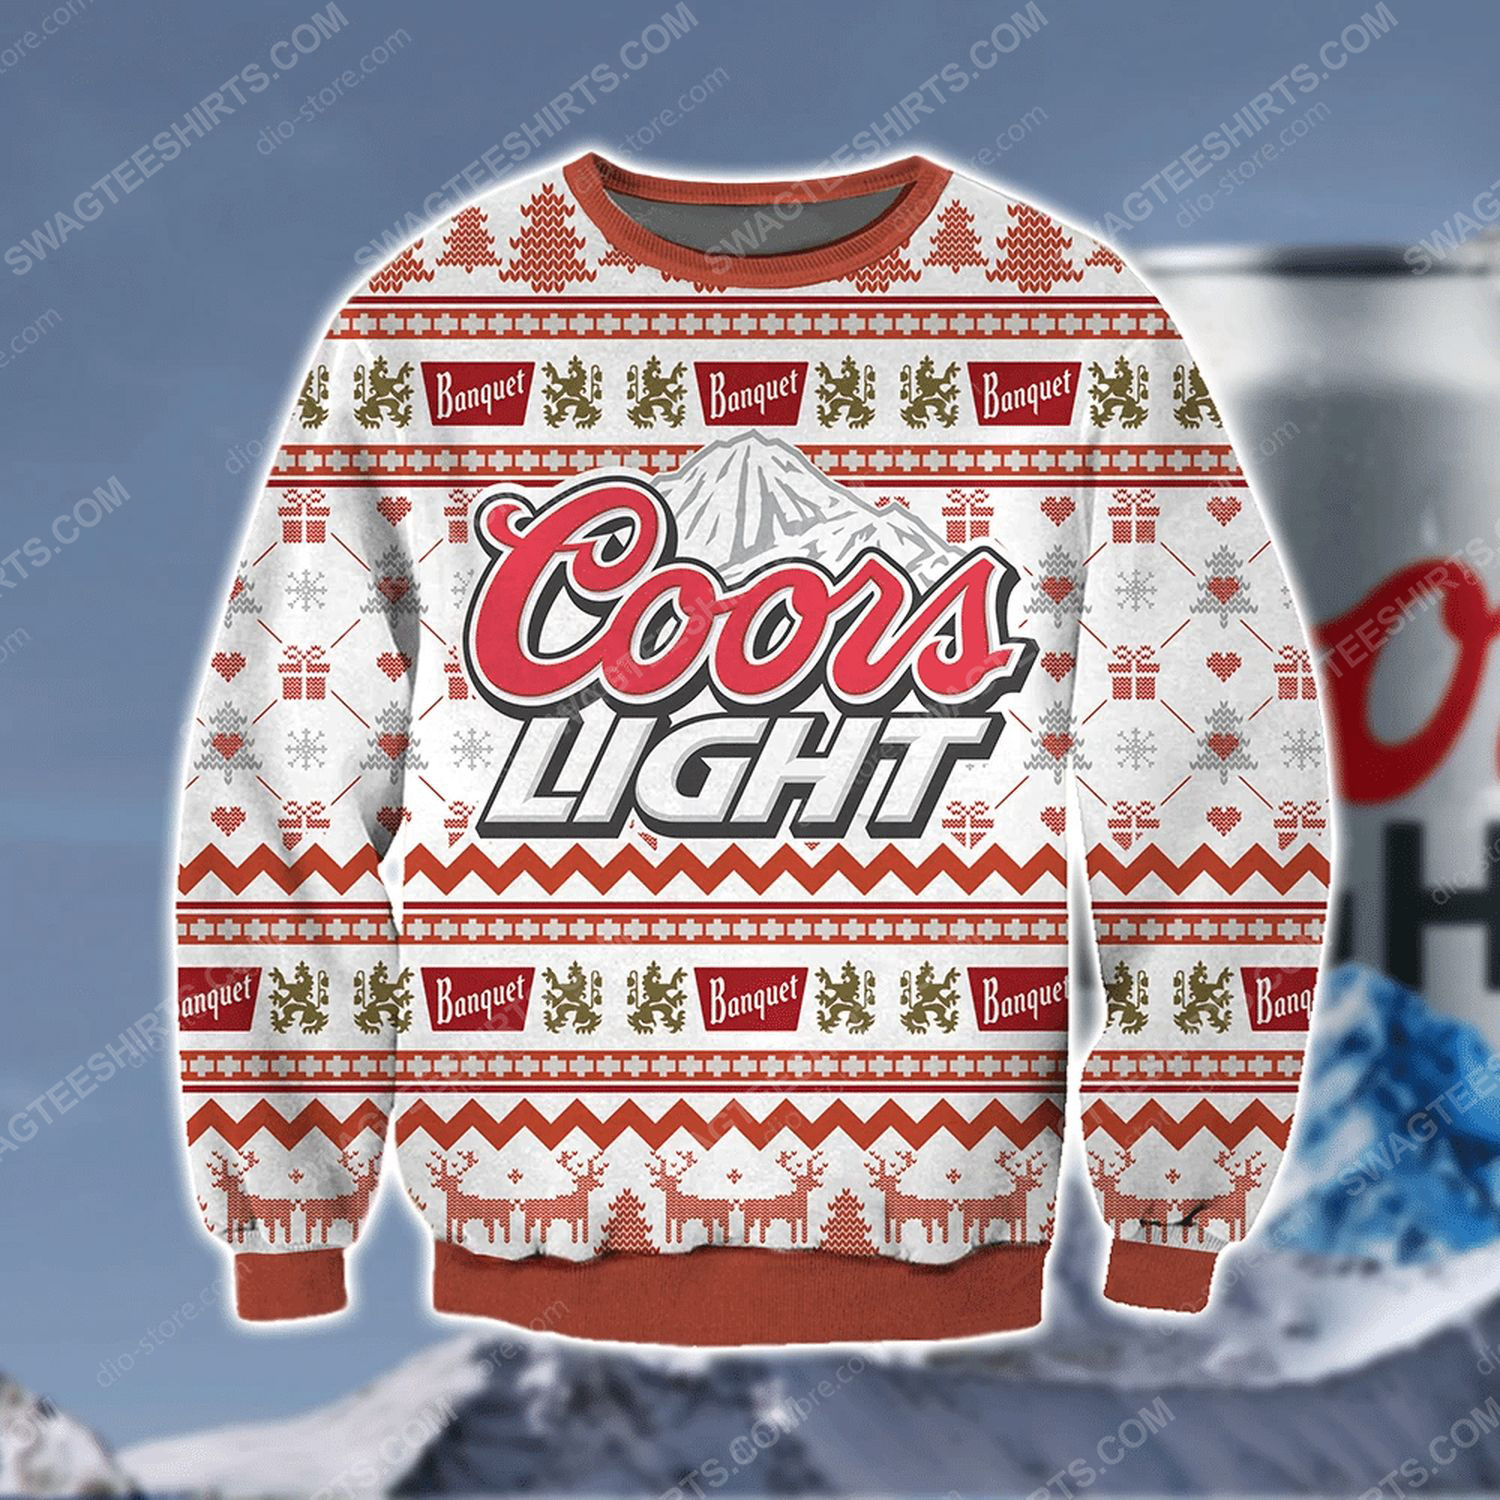 Coors light banquet beer ugly christmas sweater